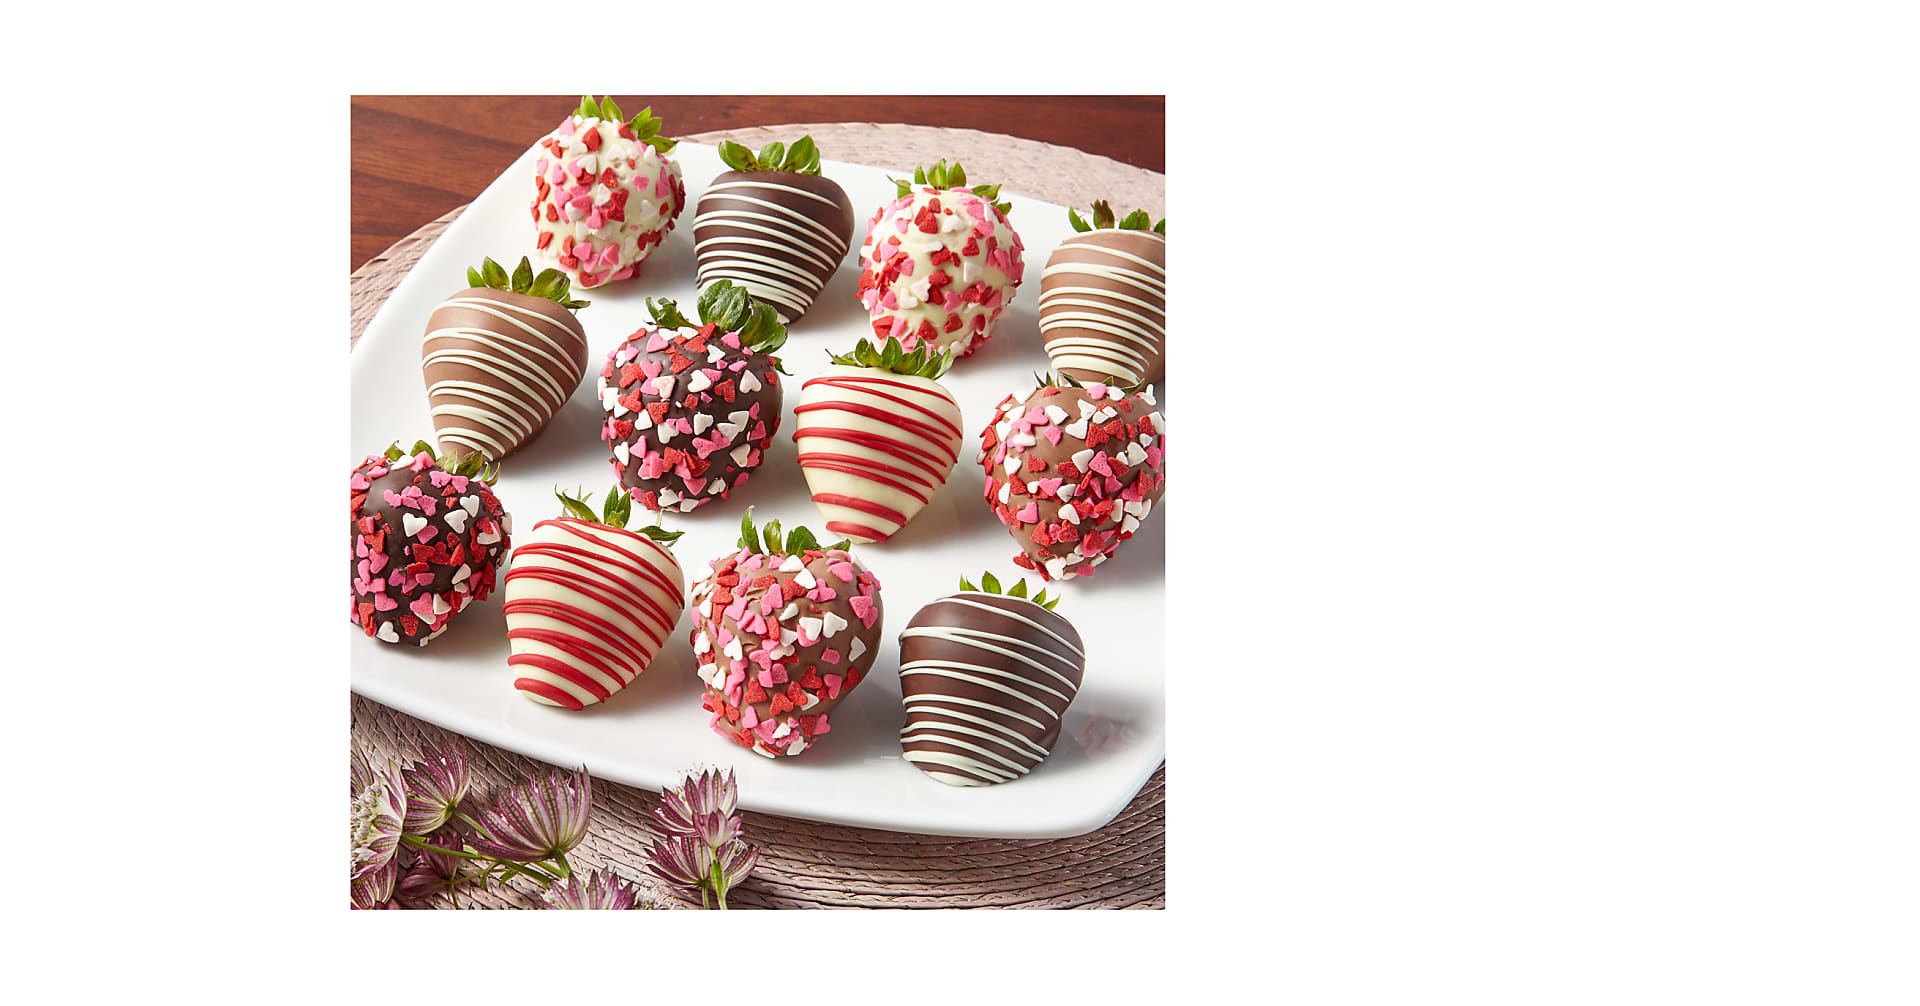 Valentine's Day Belgian Chocolate Covered Strawberries - Image 1 Of 2